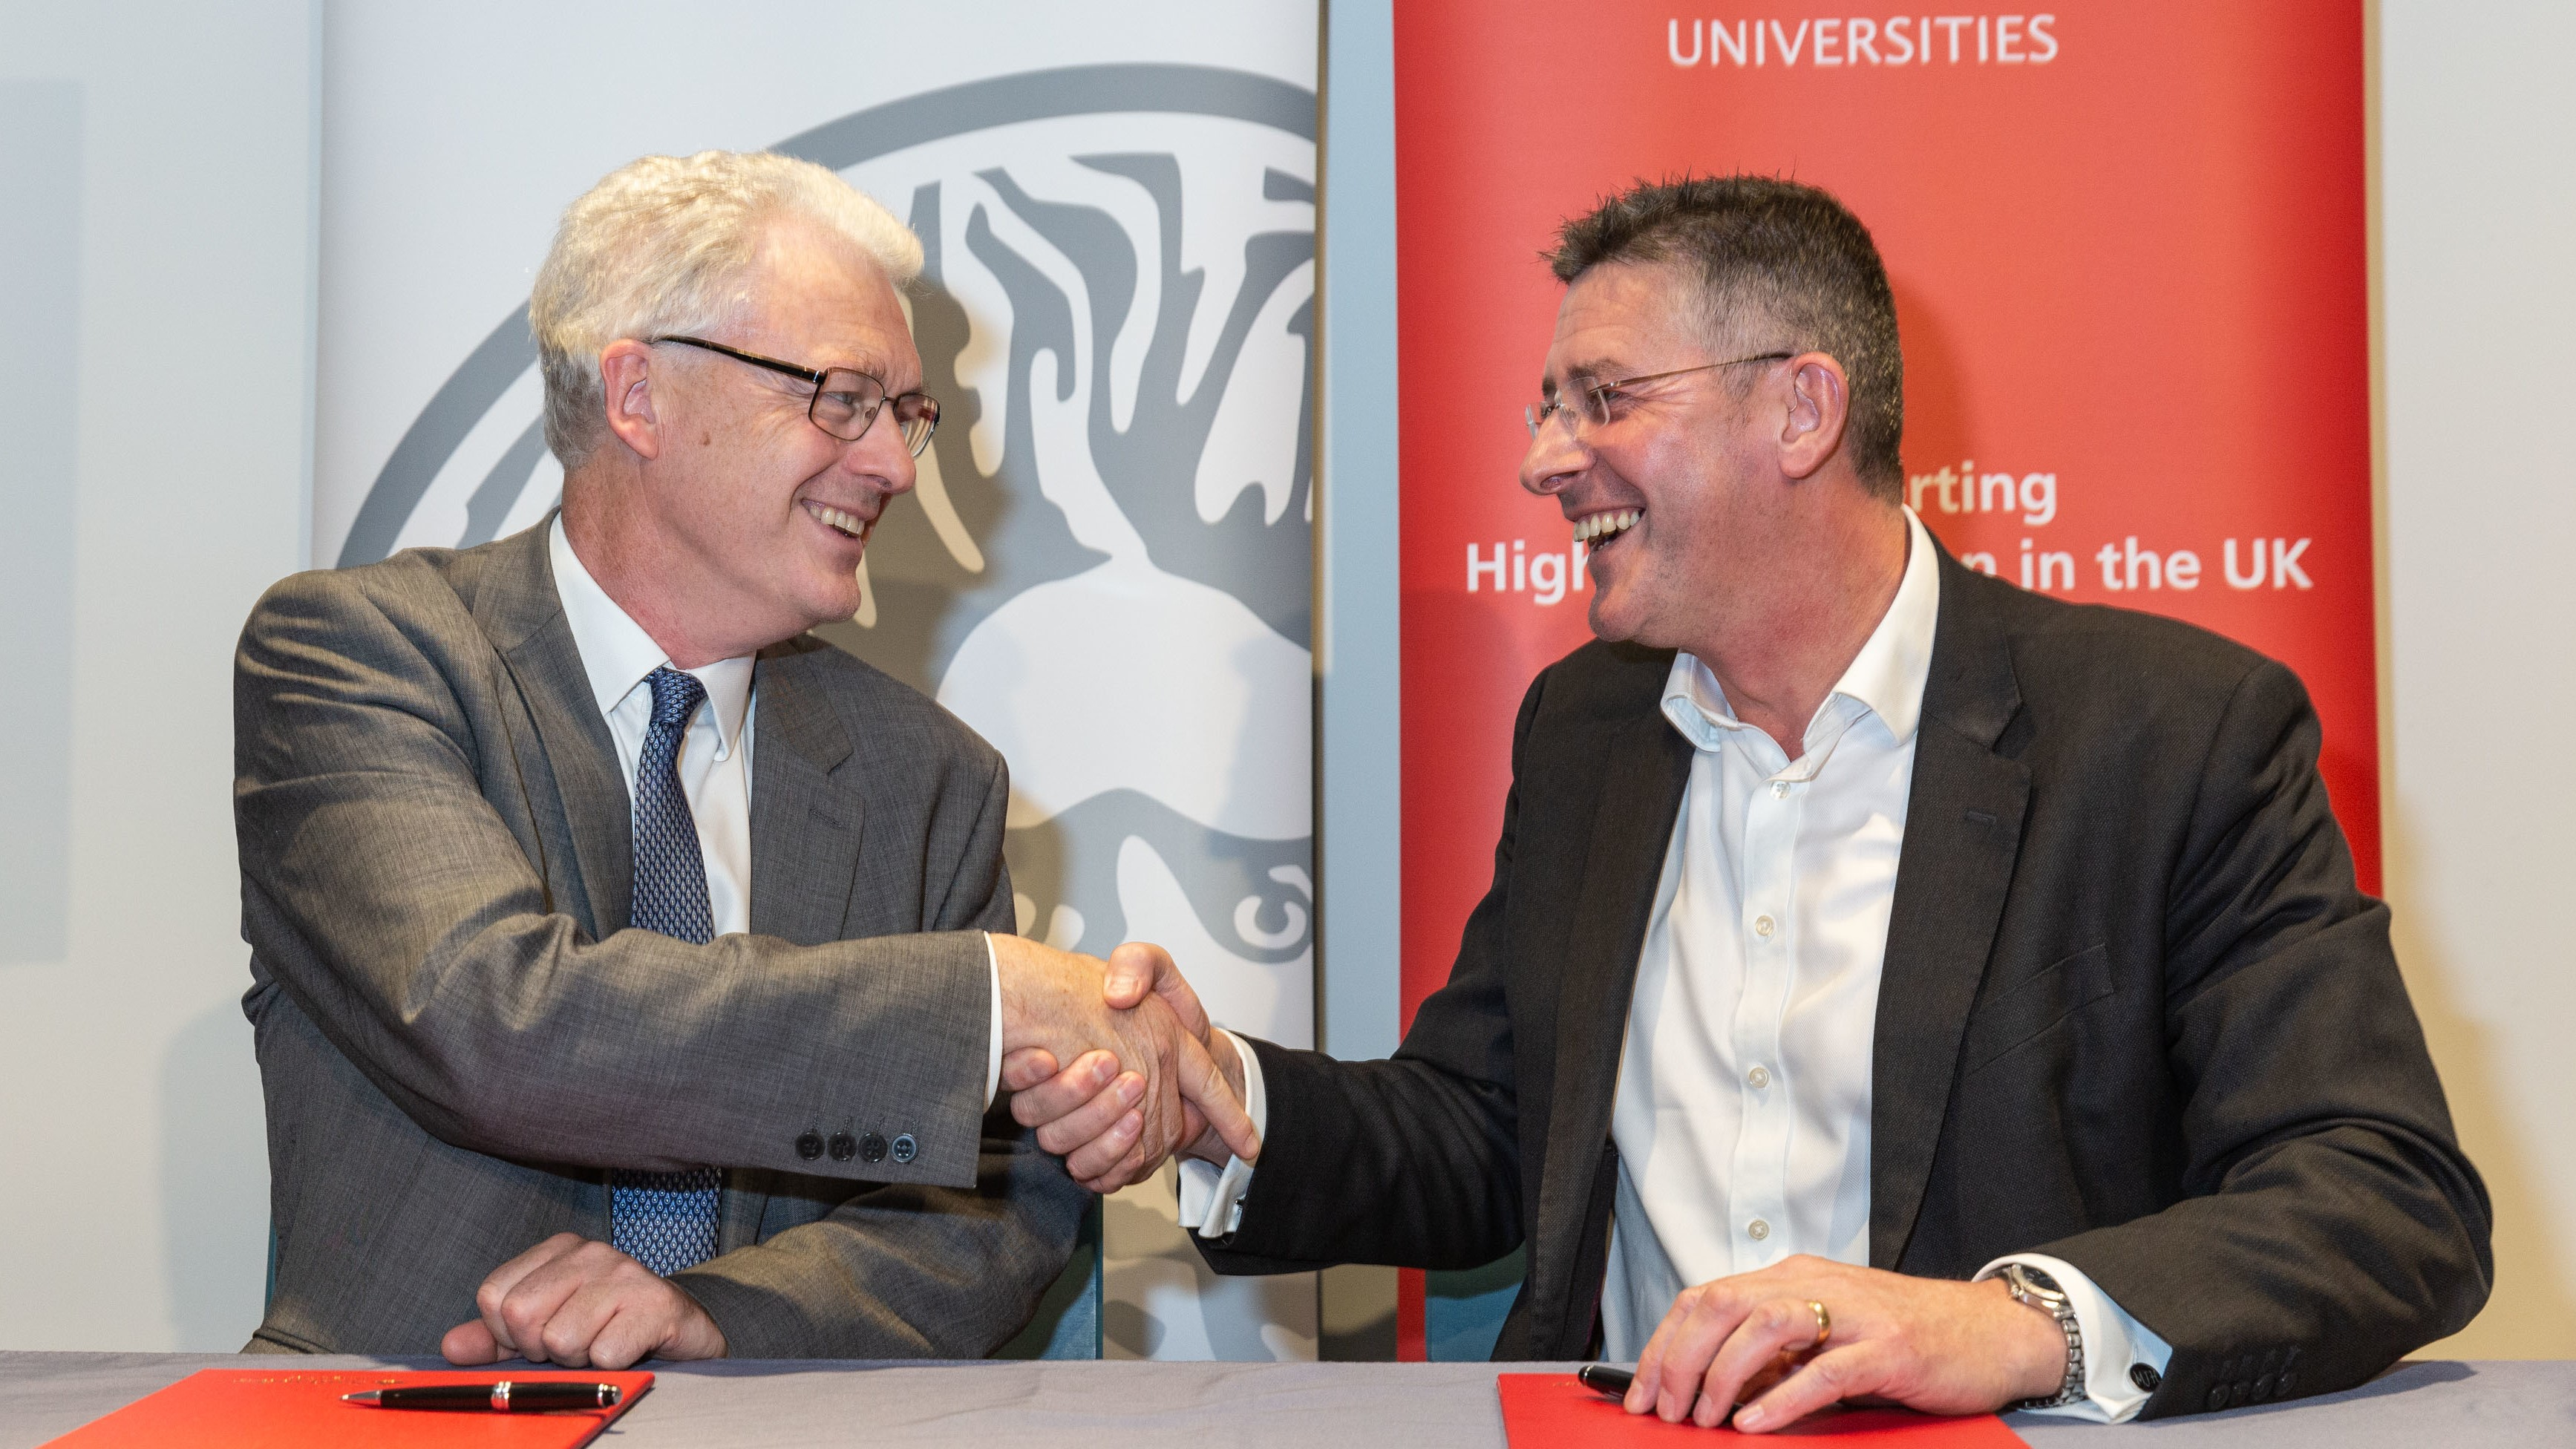 Matt Hutnell, Santander Universities UK and Professor Ian White, University of Bath, shake hands